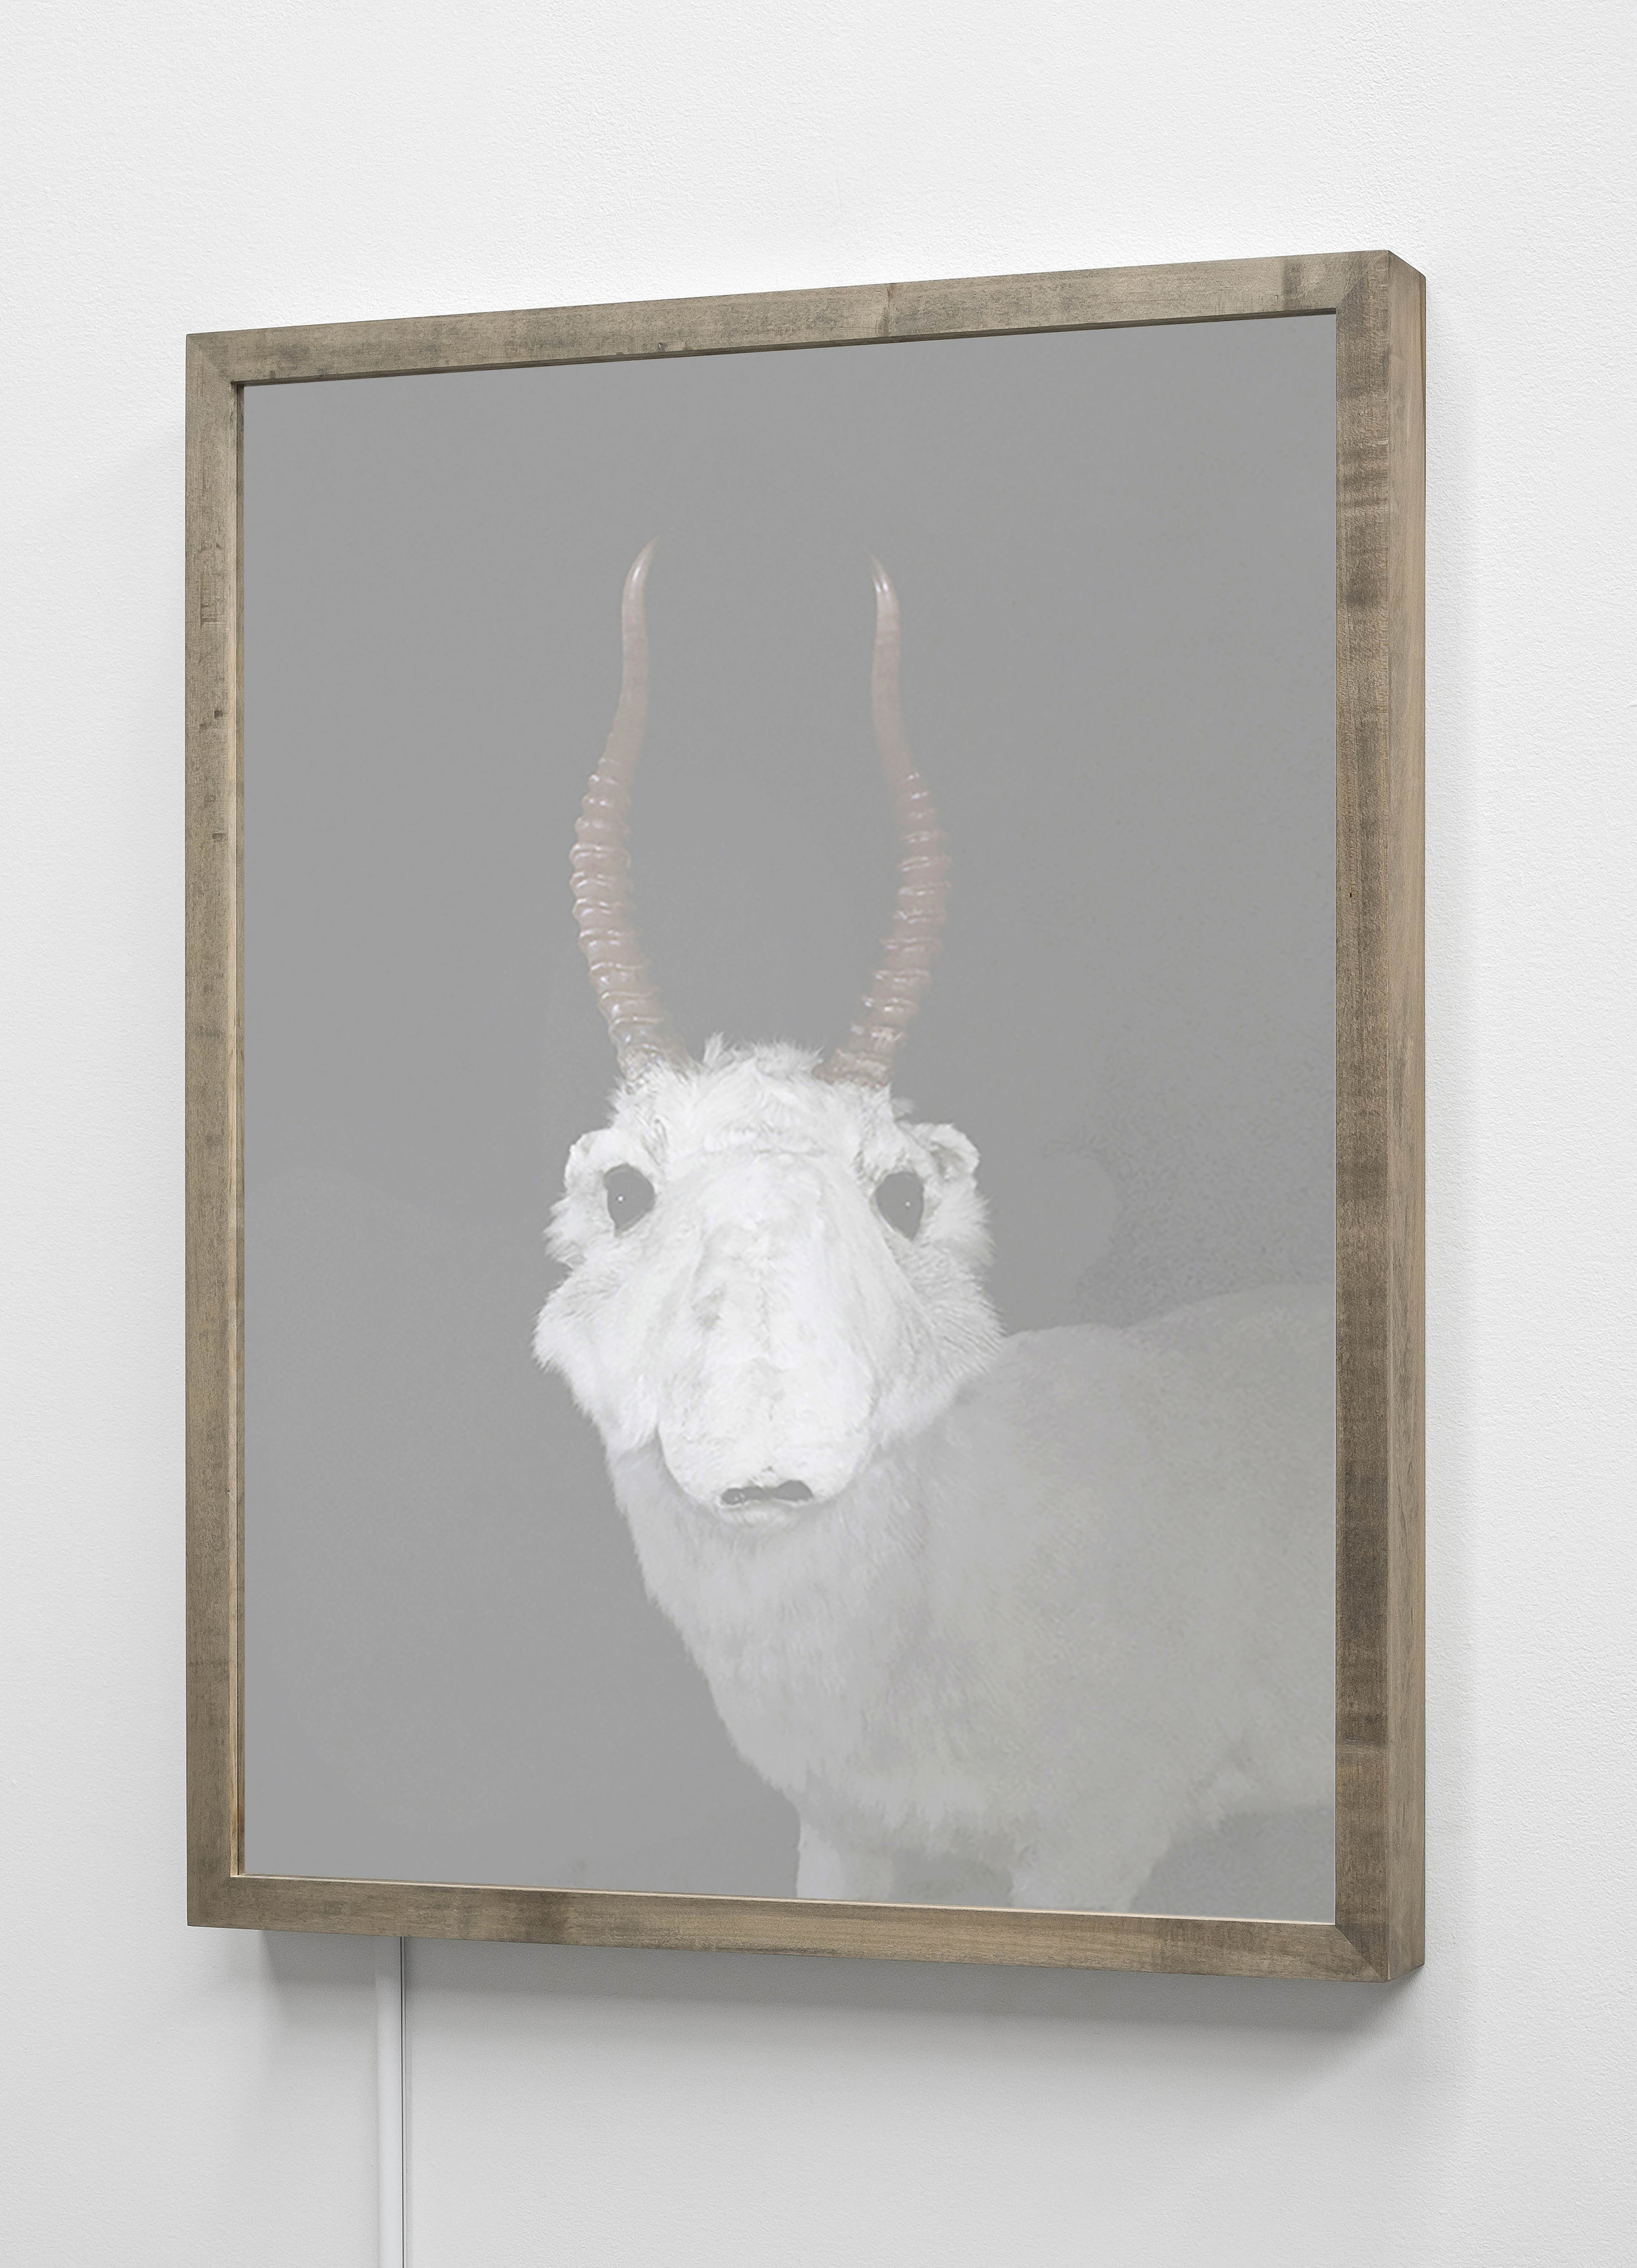 CHRISTINA SEELY  Saiga Antelope,  Saiga tatarica - Critically Endangered Kinetic Mirrored Lightbox  Available size:  30 x 24 in | Edition of 3 + 1AP 20 x 16 in | Edition of 3 + 1AP